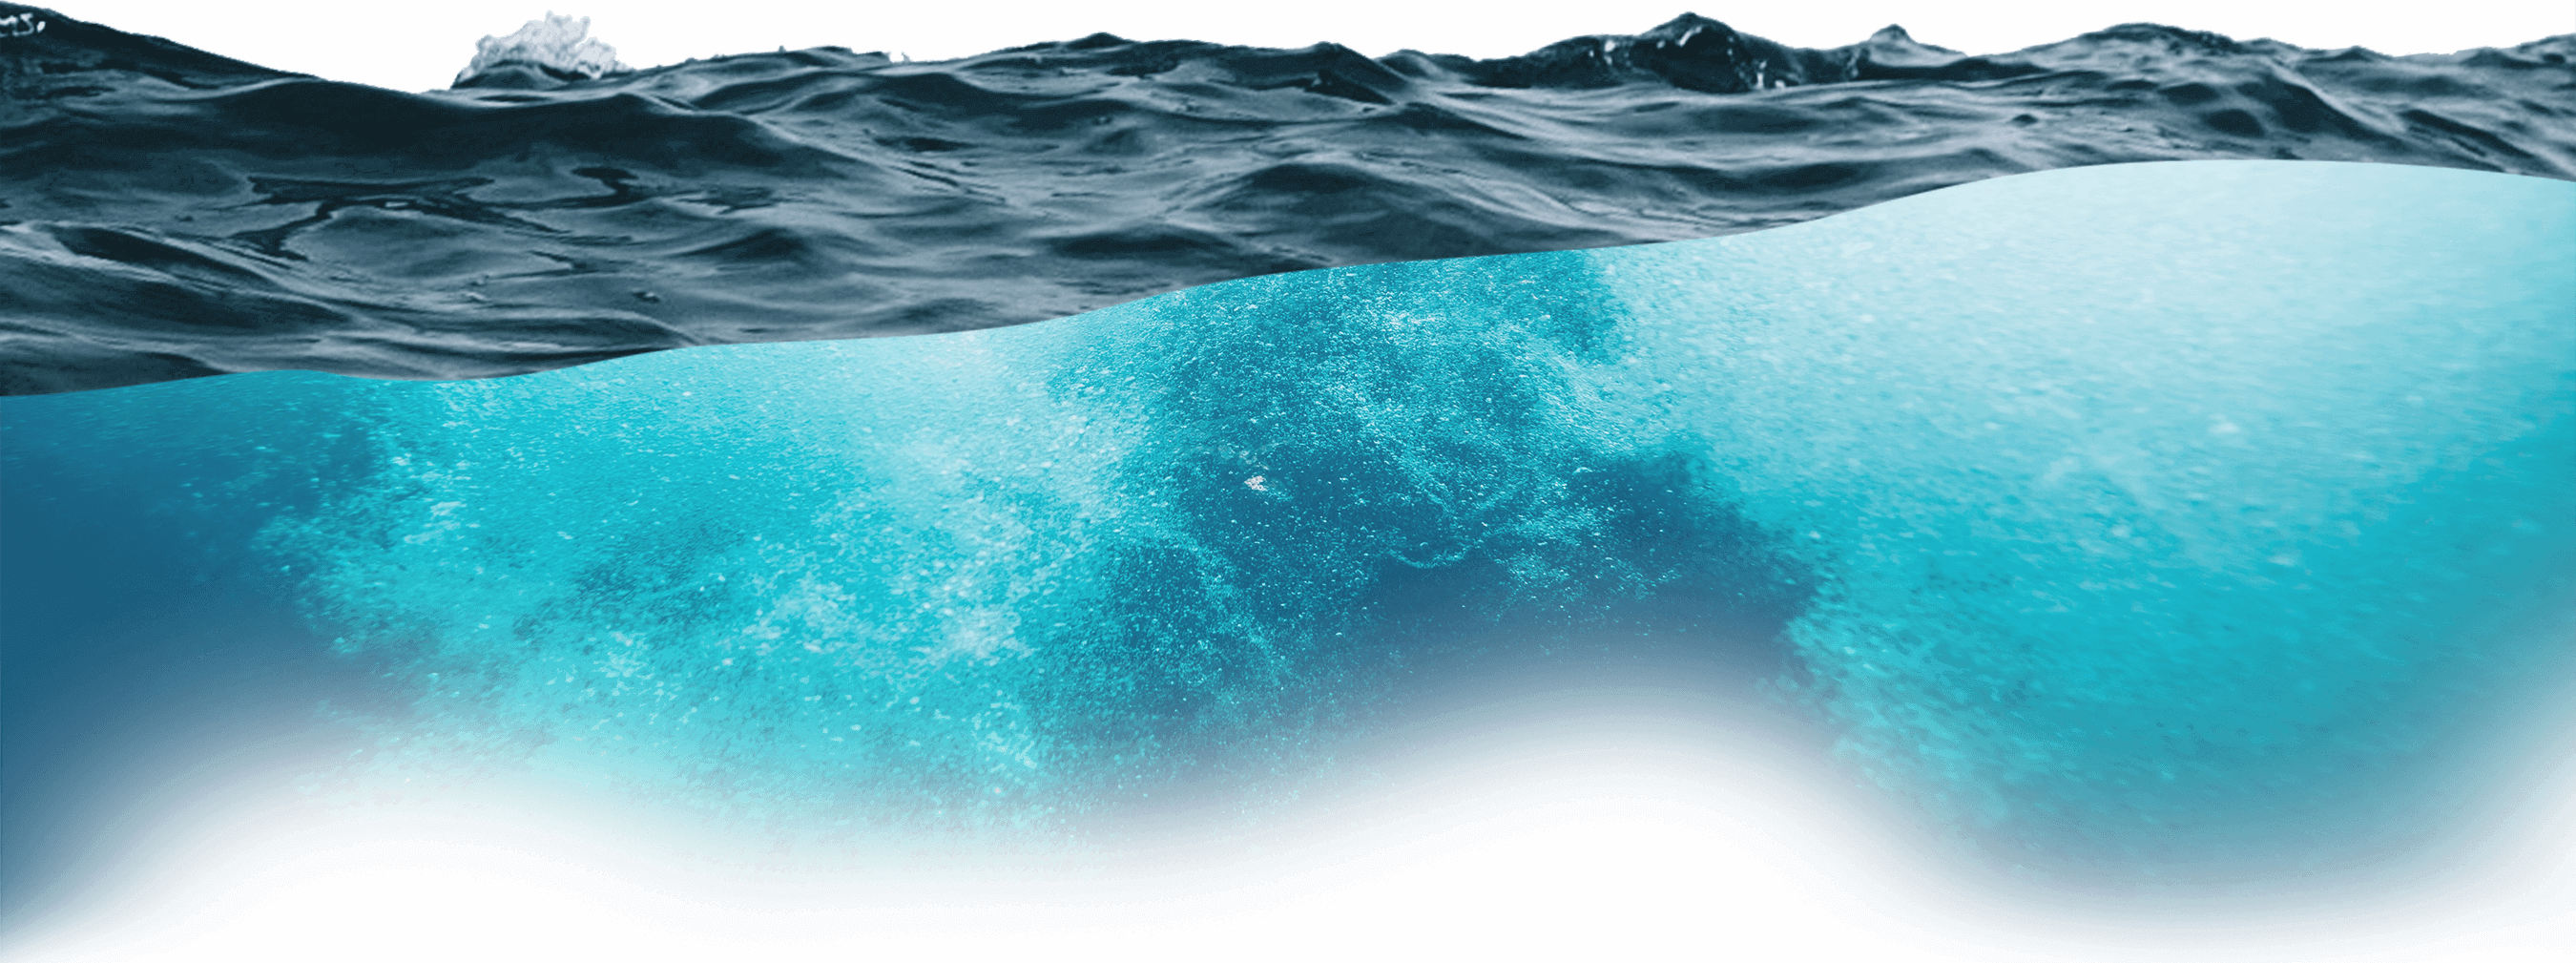 Wavy ocean surface with bubbles underwater